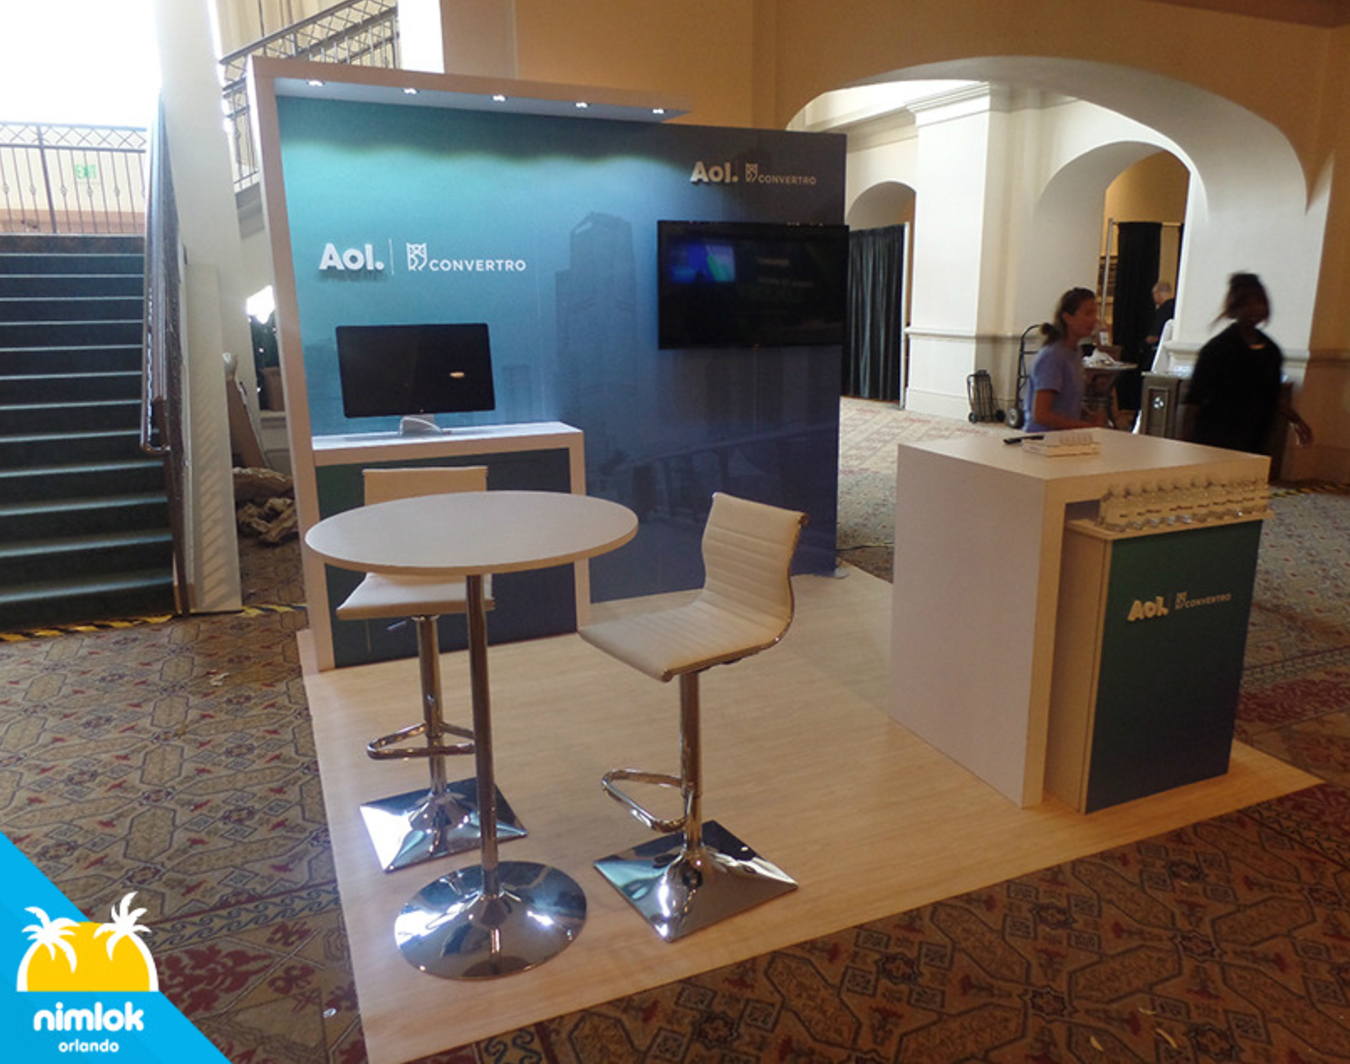 AOL 10x10 Custom Trade Show Booth Exhibit - Nimlok Orlando ...